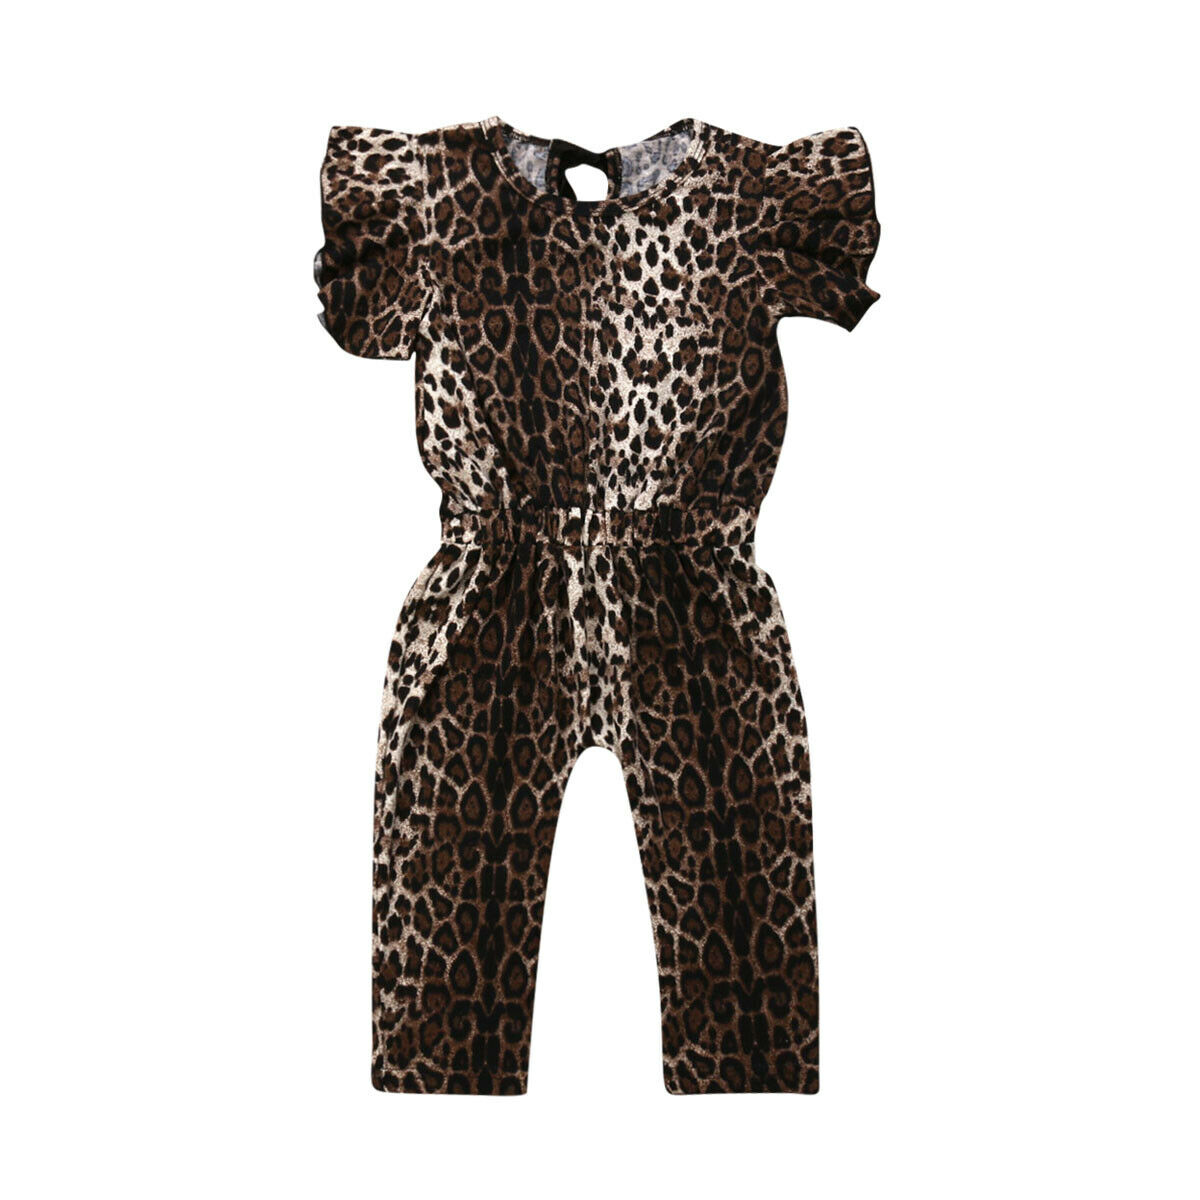 Girls' Baby Clothing Smart 1-5y Fashion Toddler Kids Baby Girl Ruffles Sleeveless Leopard Long Romper Jumpsuit One Pieces Outfits Girls Clothe Mother & Kids